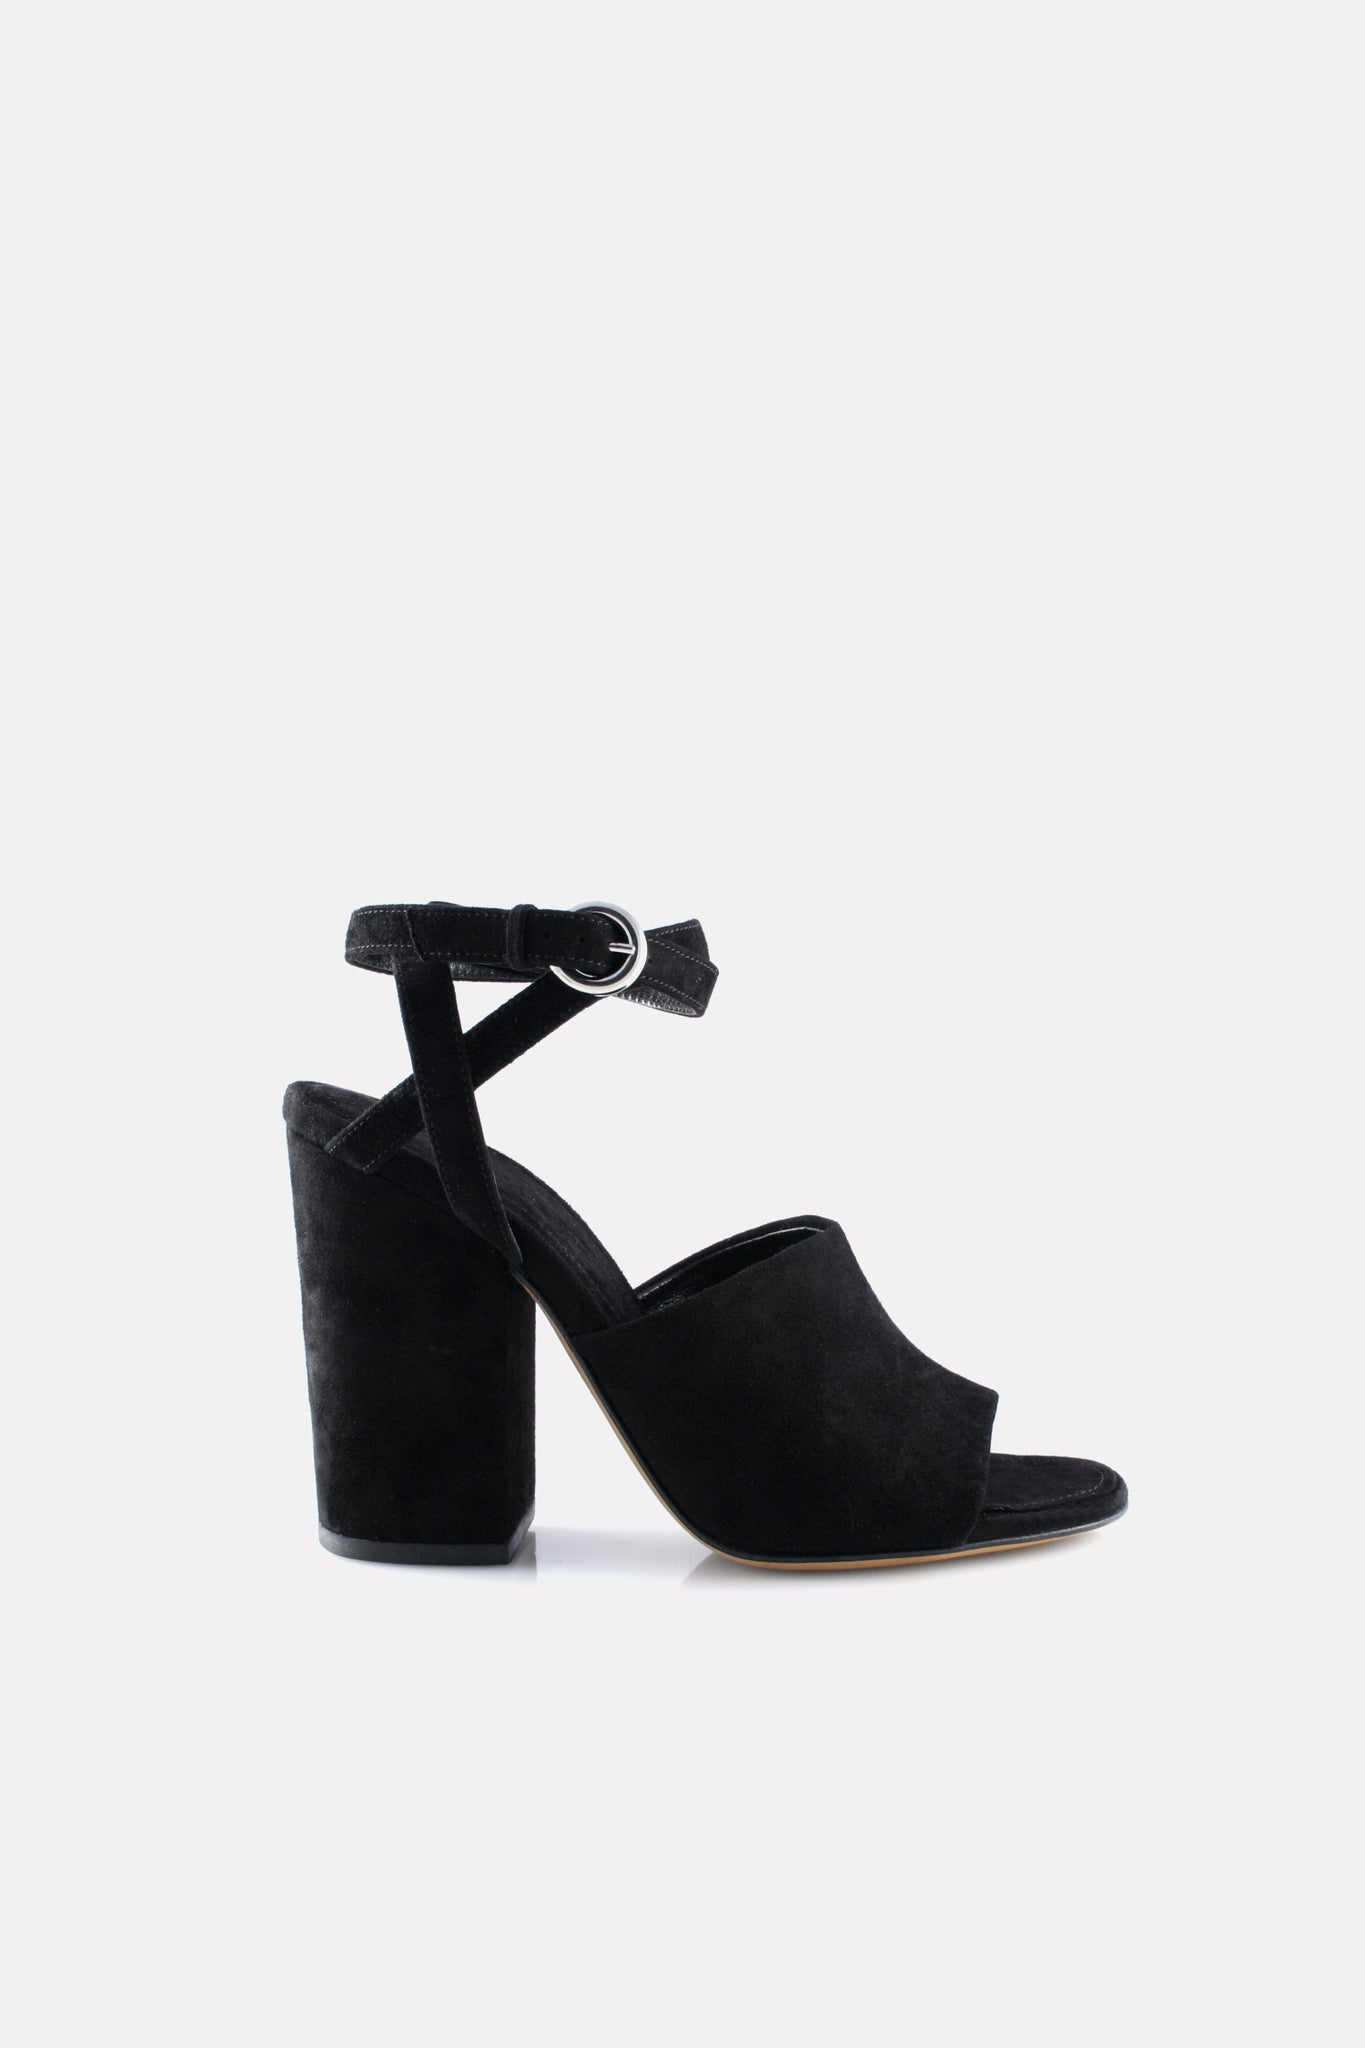 Asymmetrical Ankle Wrap Block Heel Sandal Black Suede.